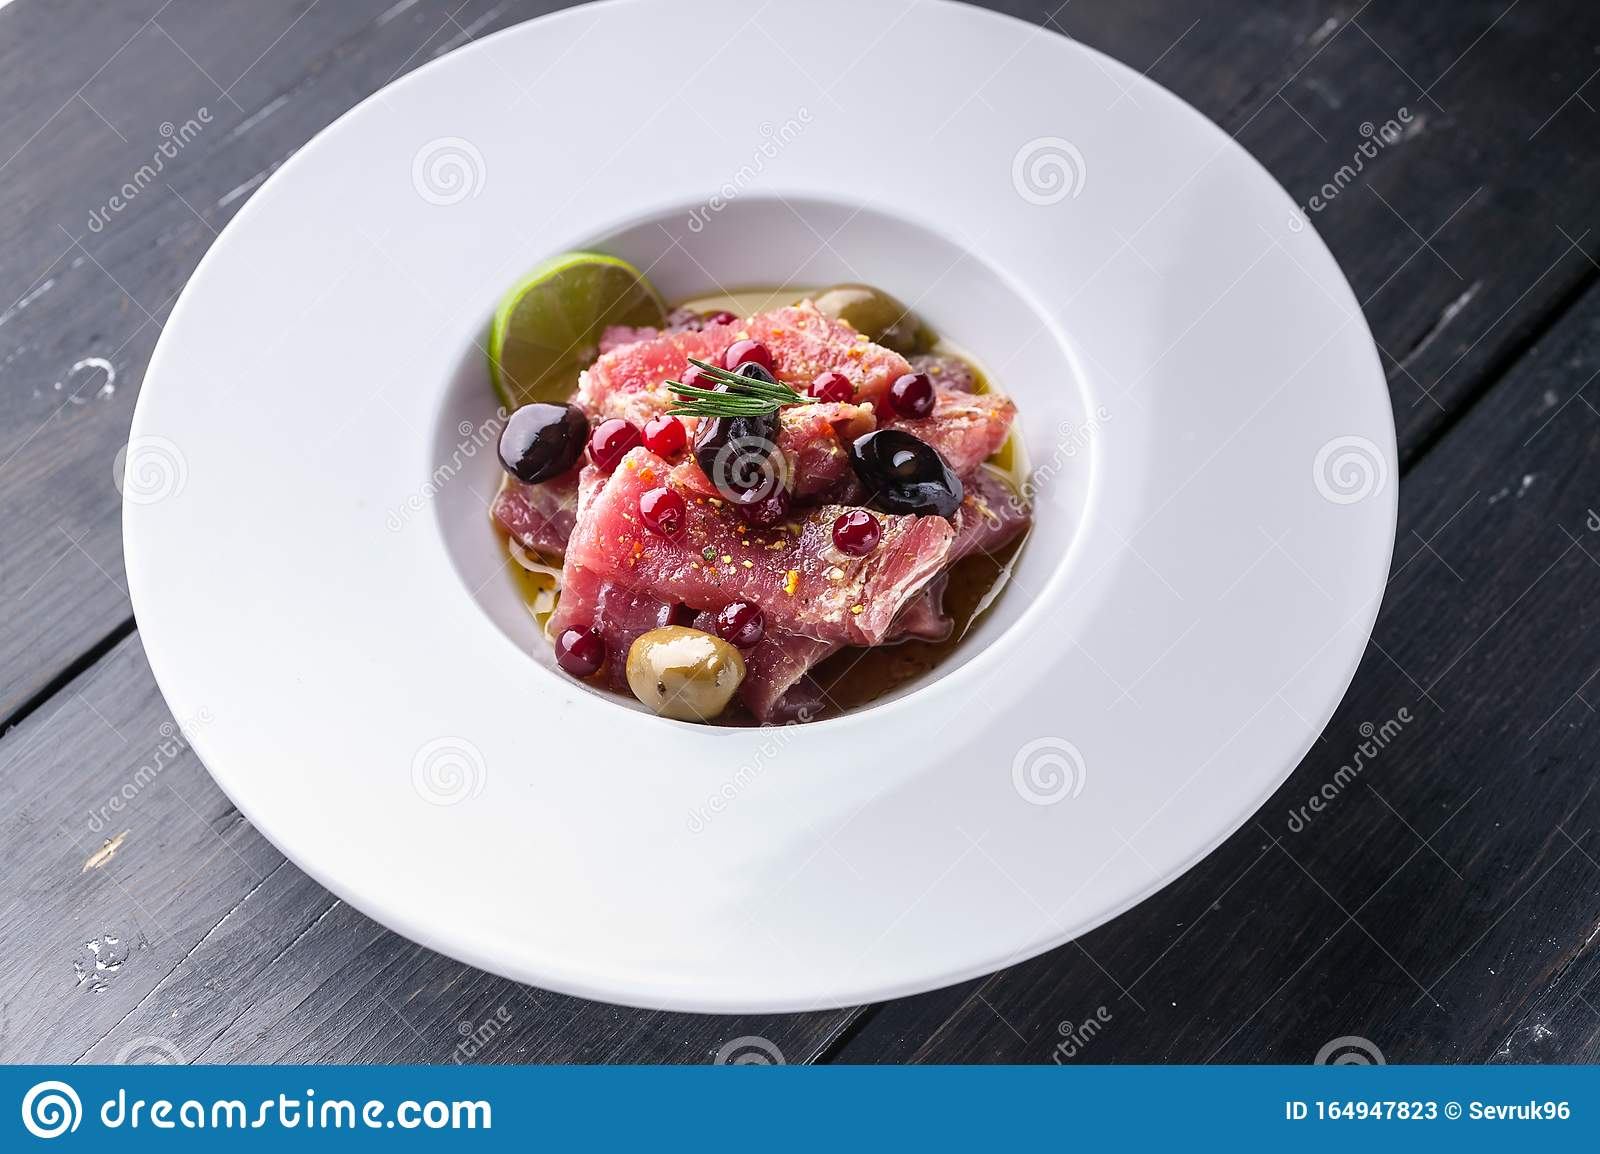 Italian Recipe For Tuna Carpaccio With Olive Oil Spices And Lime Juice Food Porn Mediterranean Kitchen Ketogenic Diet Meals Stock Image Of Freshness Fish 164947823